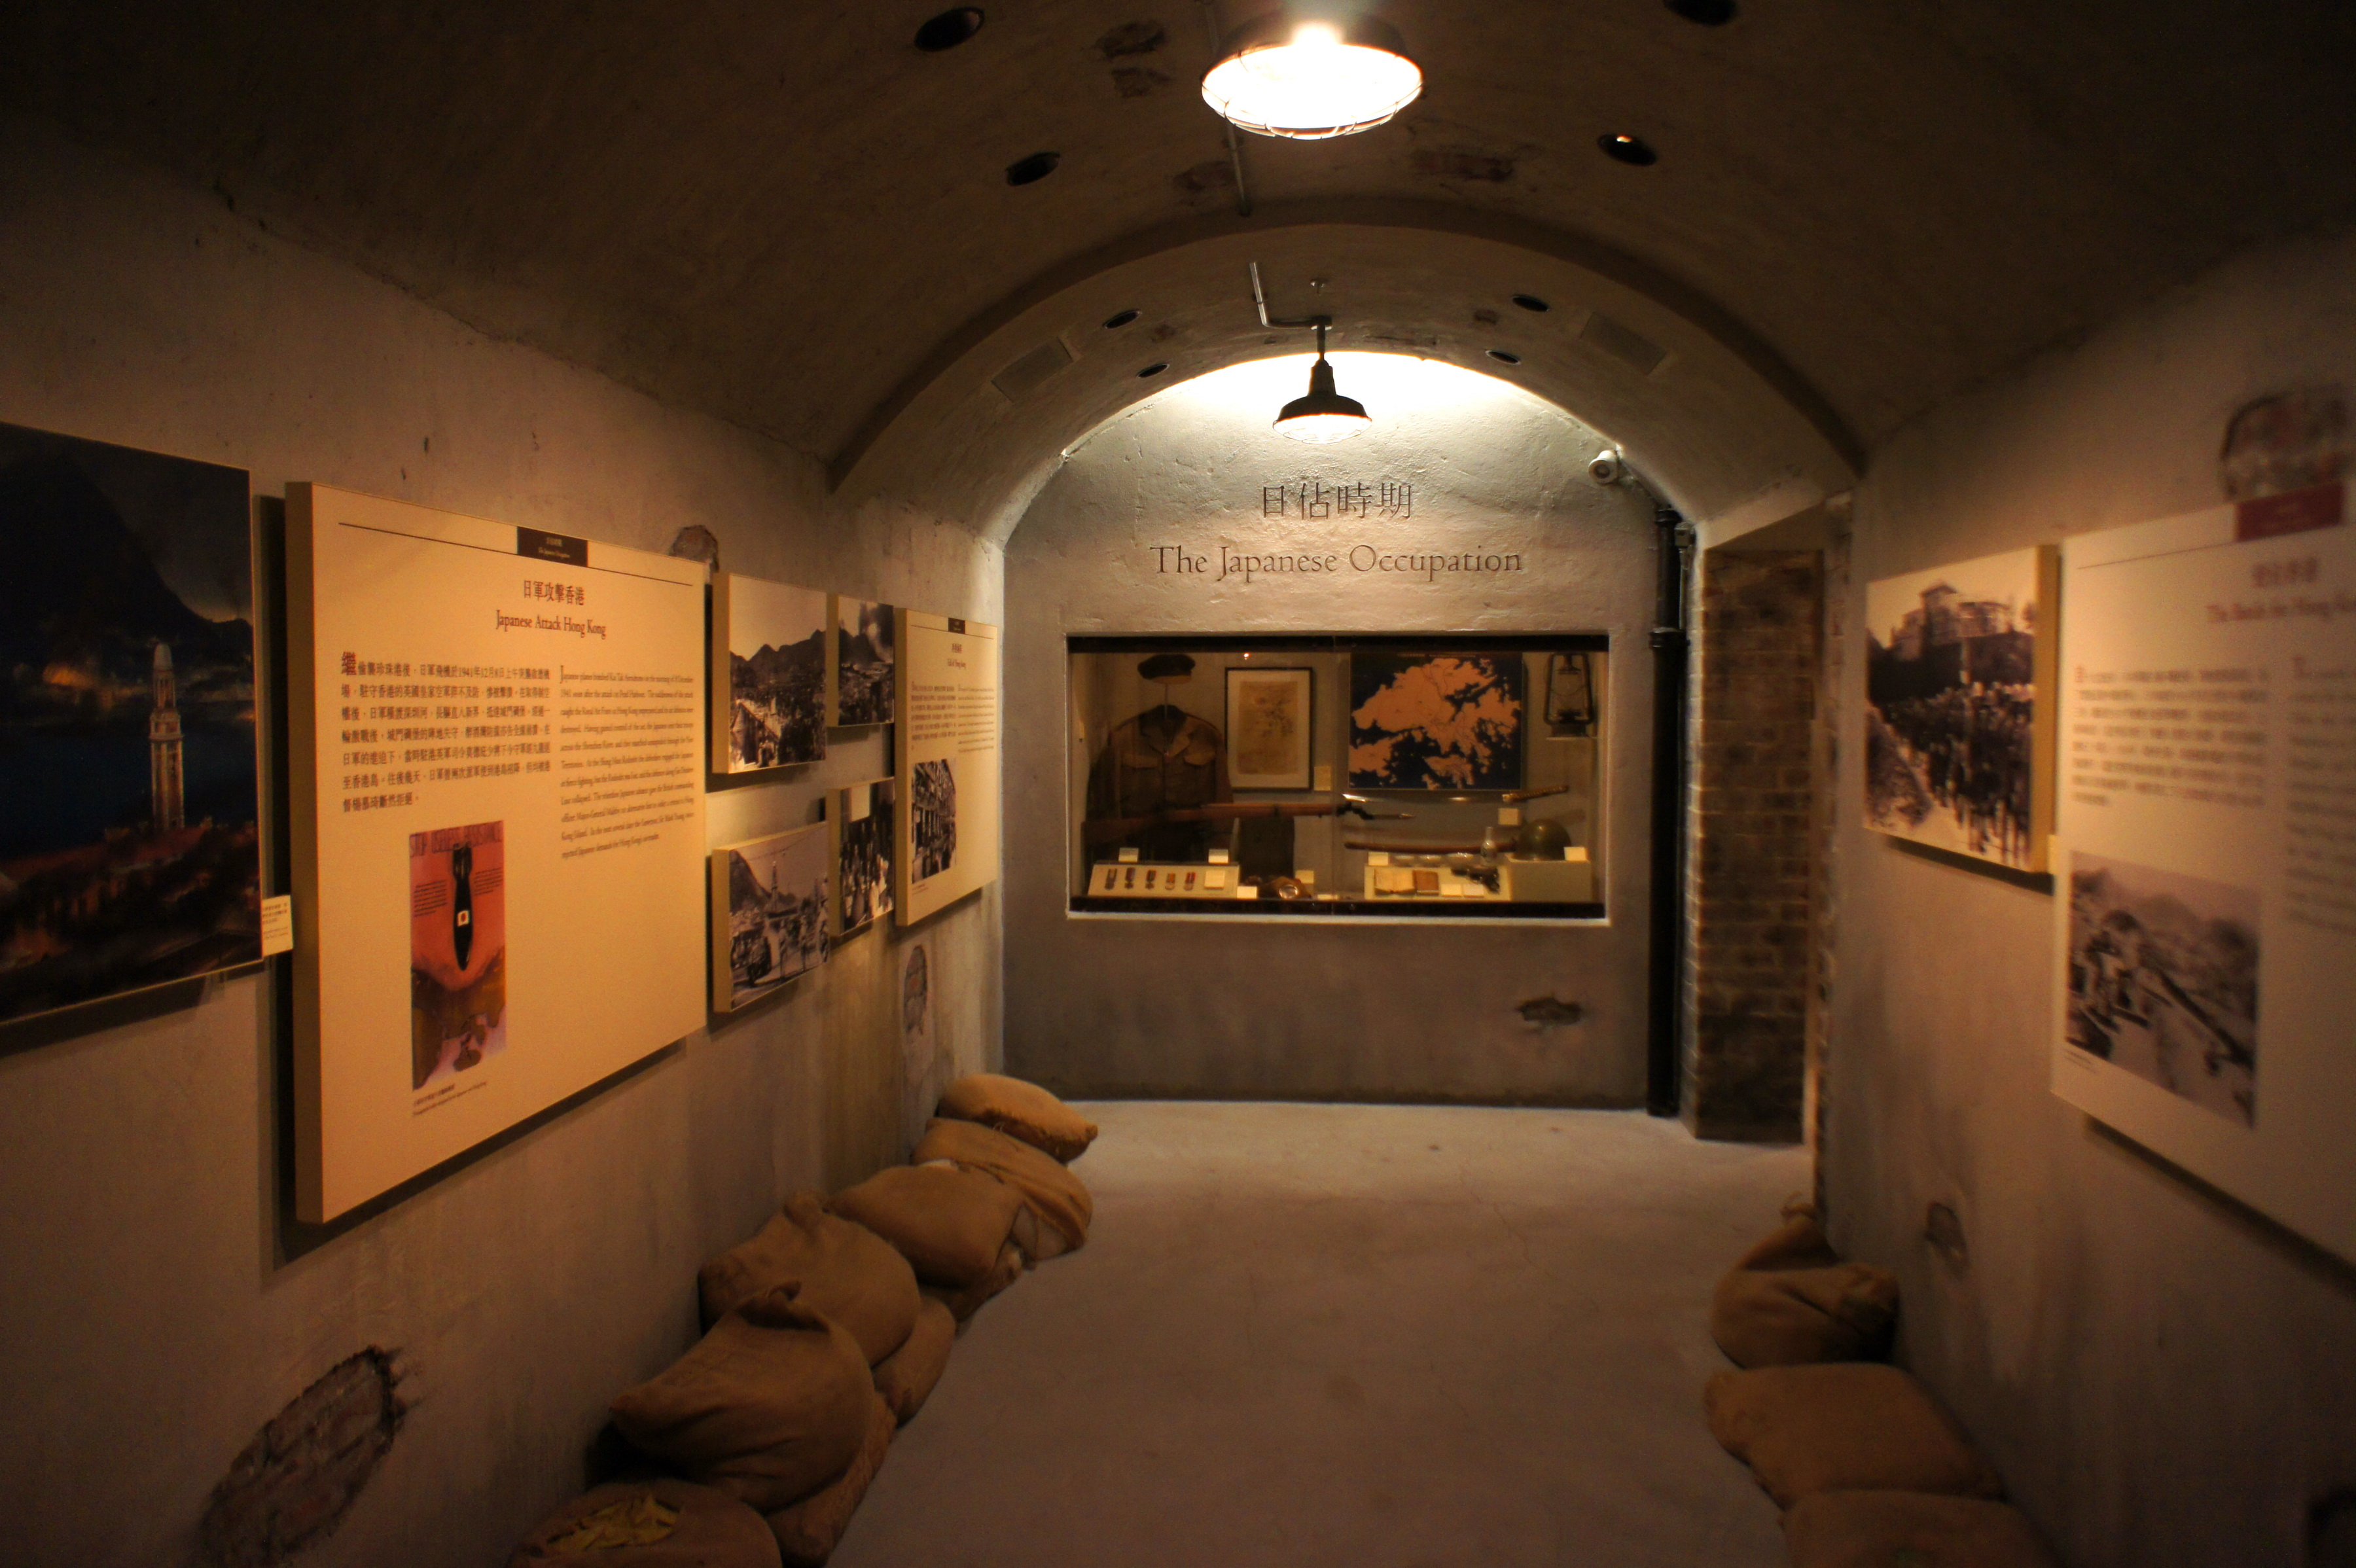 FileHong Kong Museum of History The Japanese Occupation